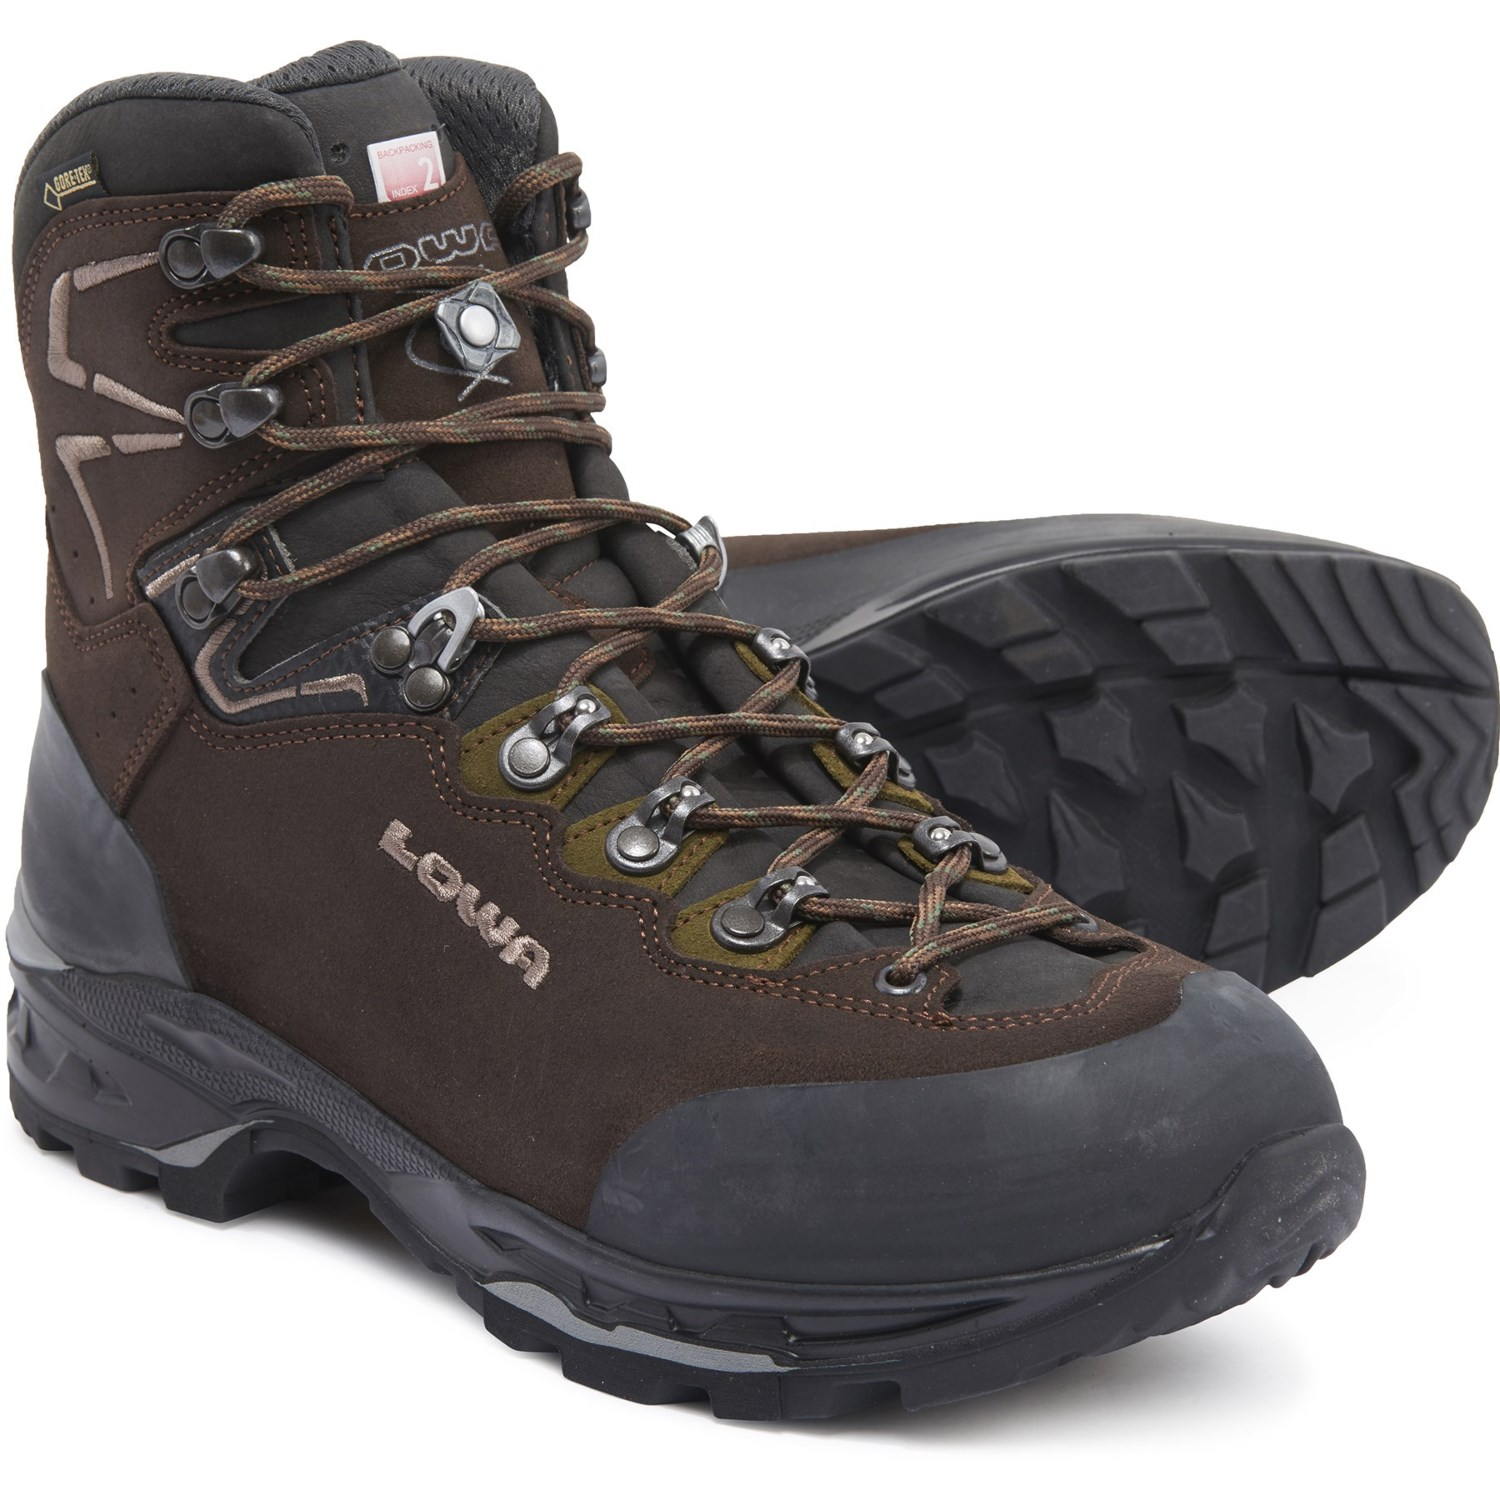 Lowa Made in Germany Ticam II Gore Tex® Hiking Boots (For